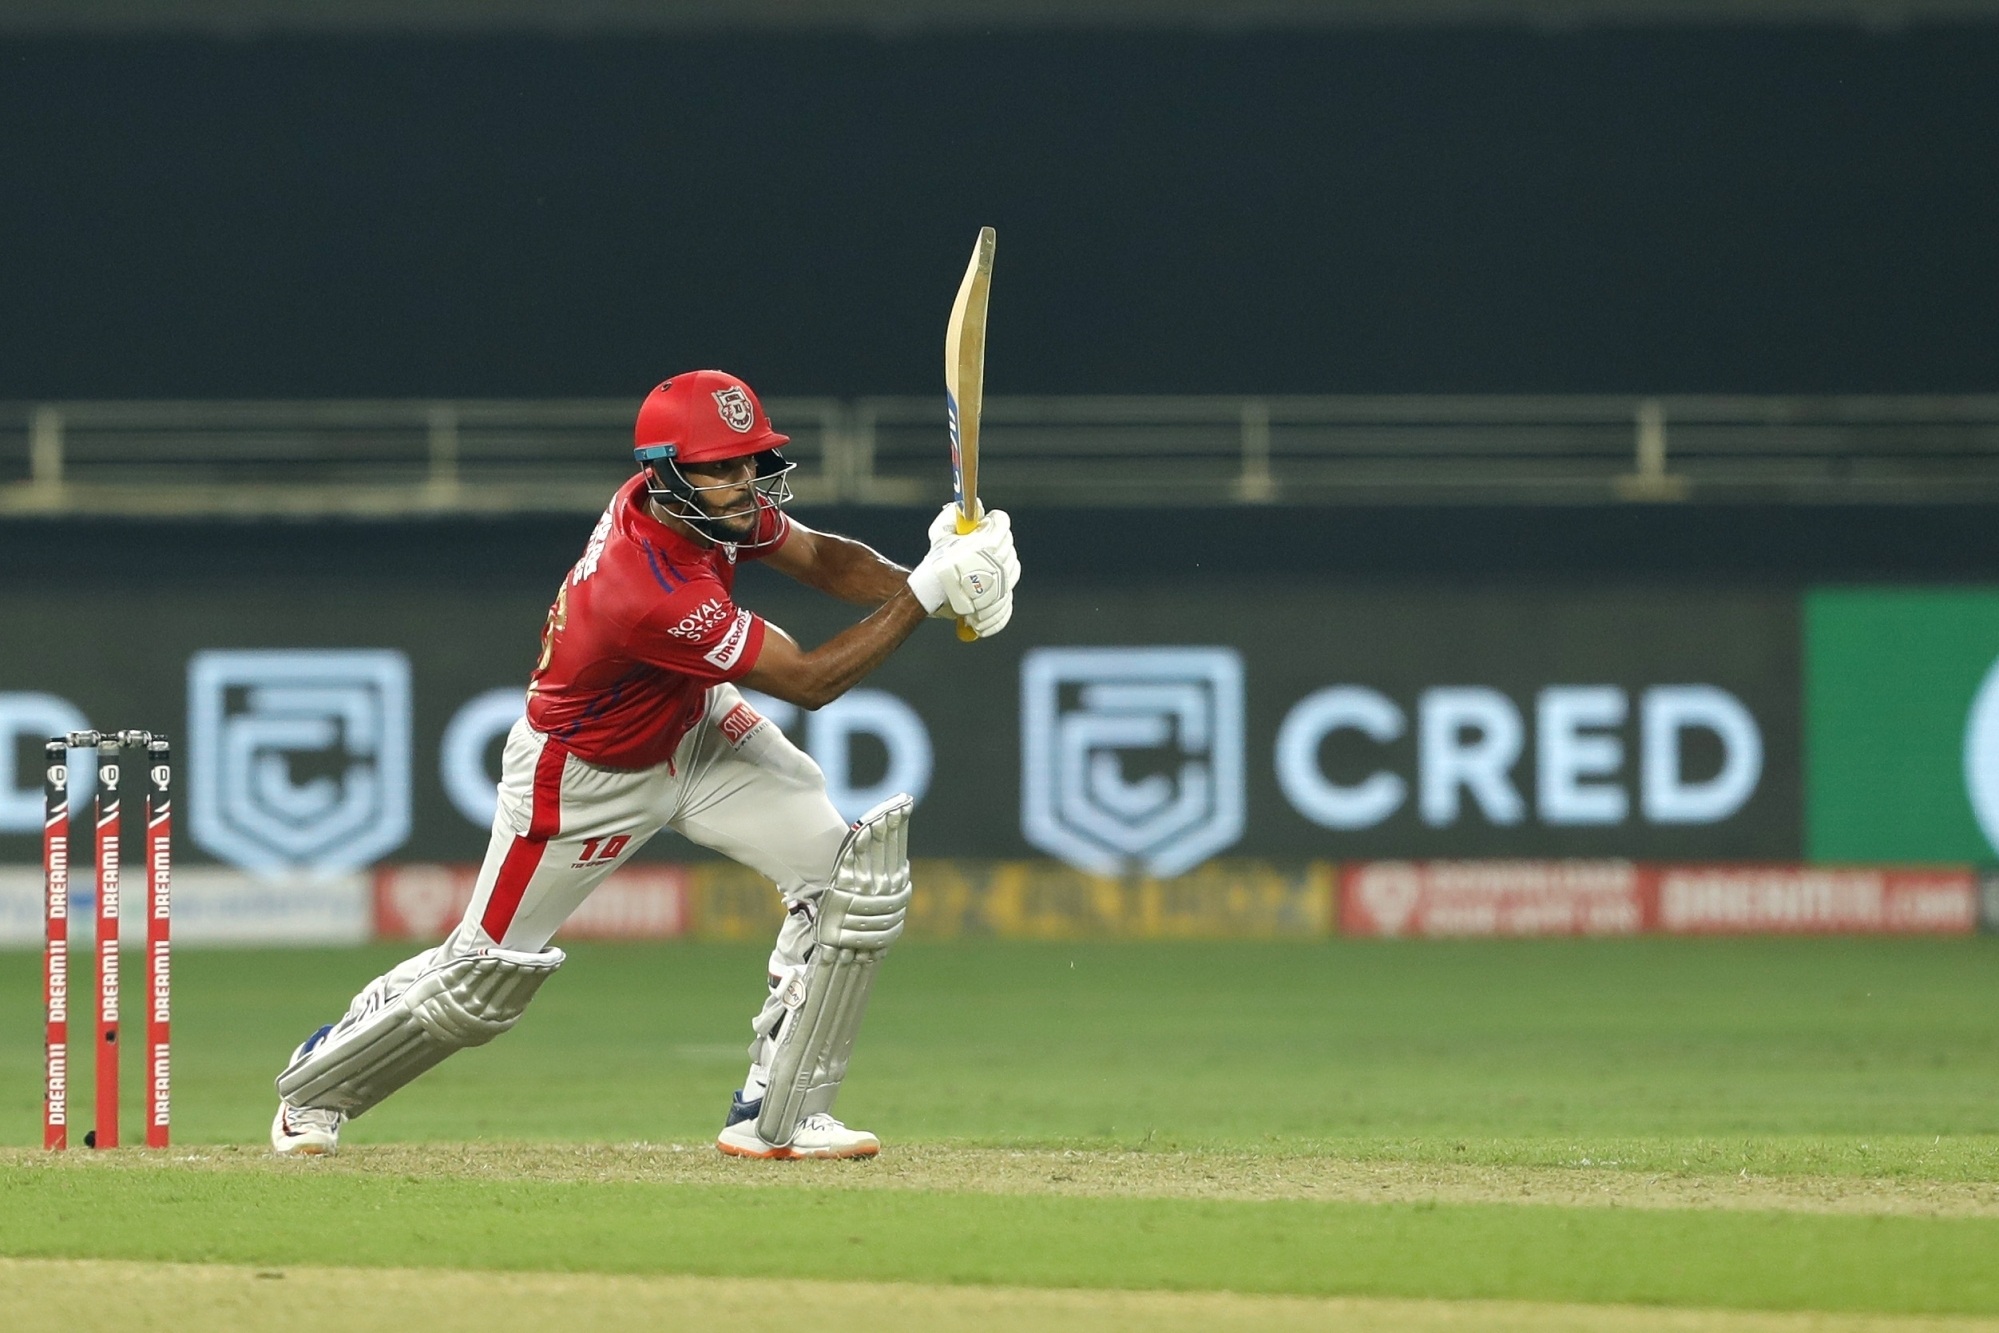 Mayank Agarwal made his IPL best 89 and almost won the match for KXIP | IANS